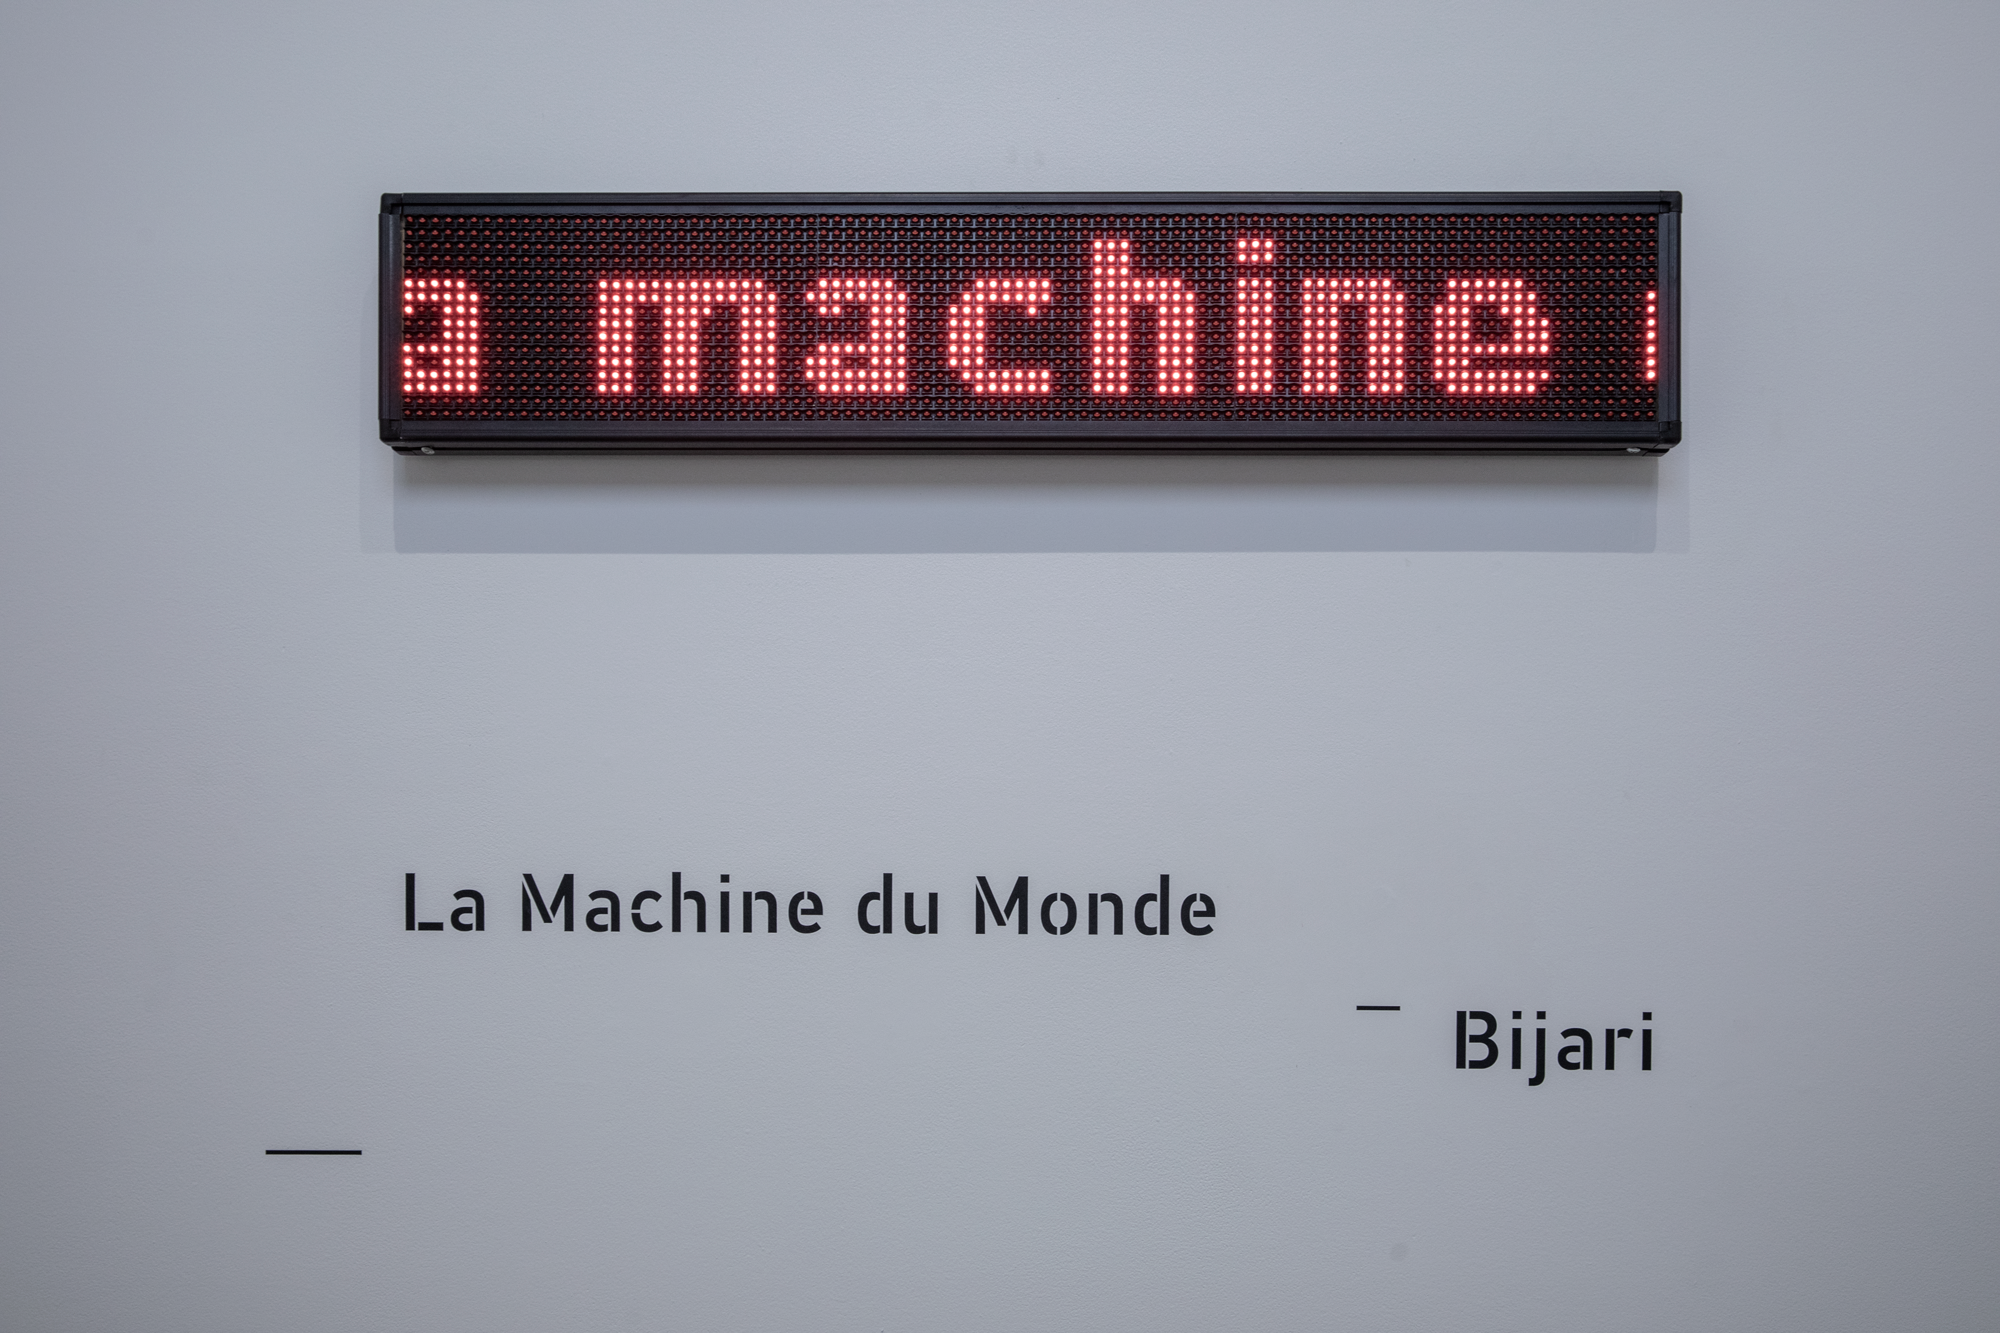 La Machine du Monde, 2019, BIJARI, PRODUCTION CRP/ © MATHIEU HAREL VIVIER